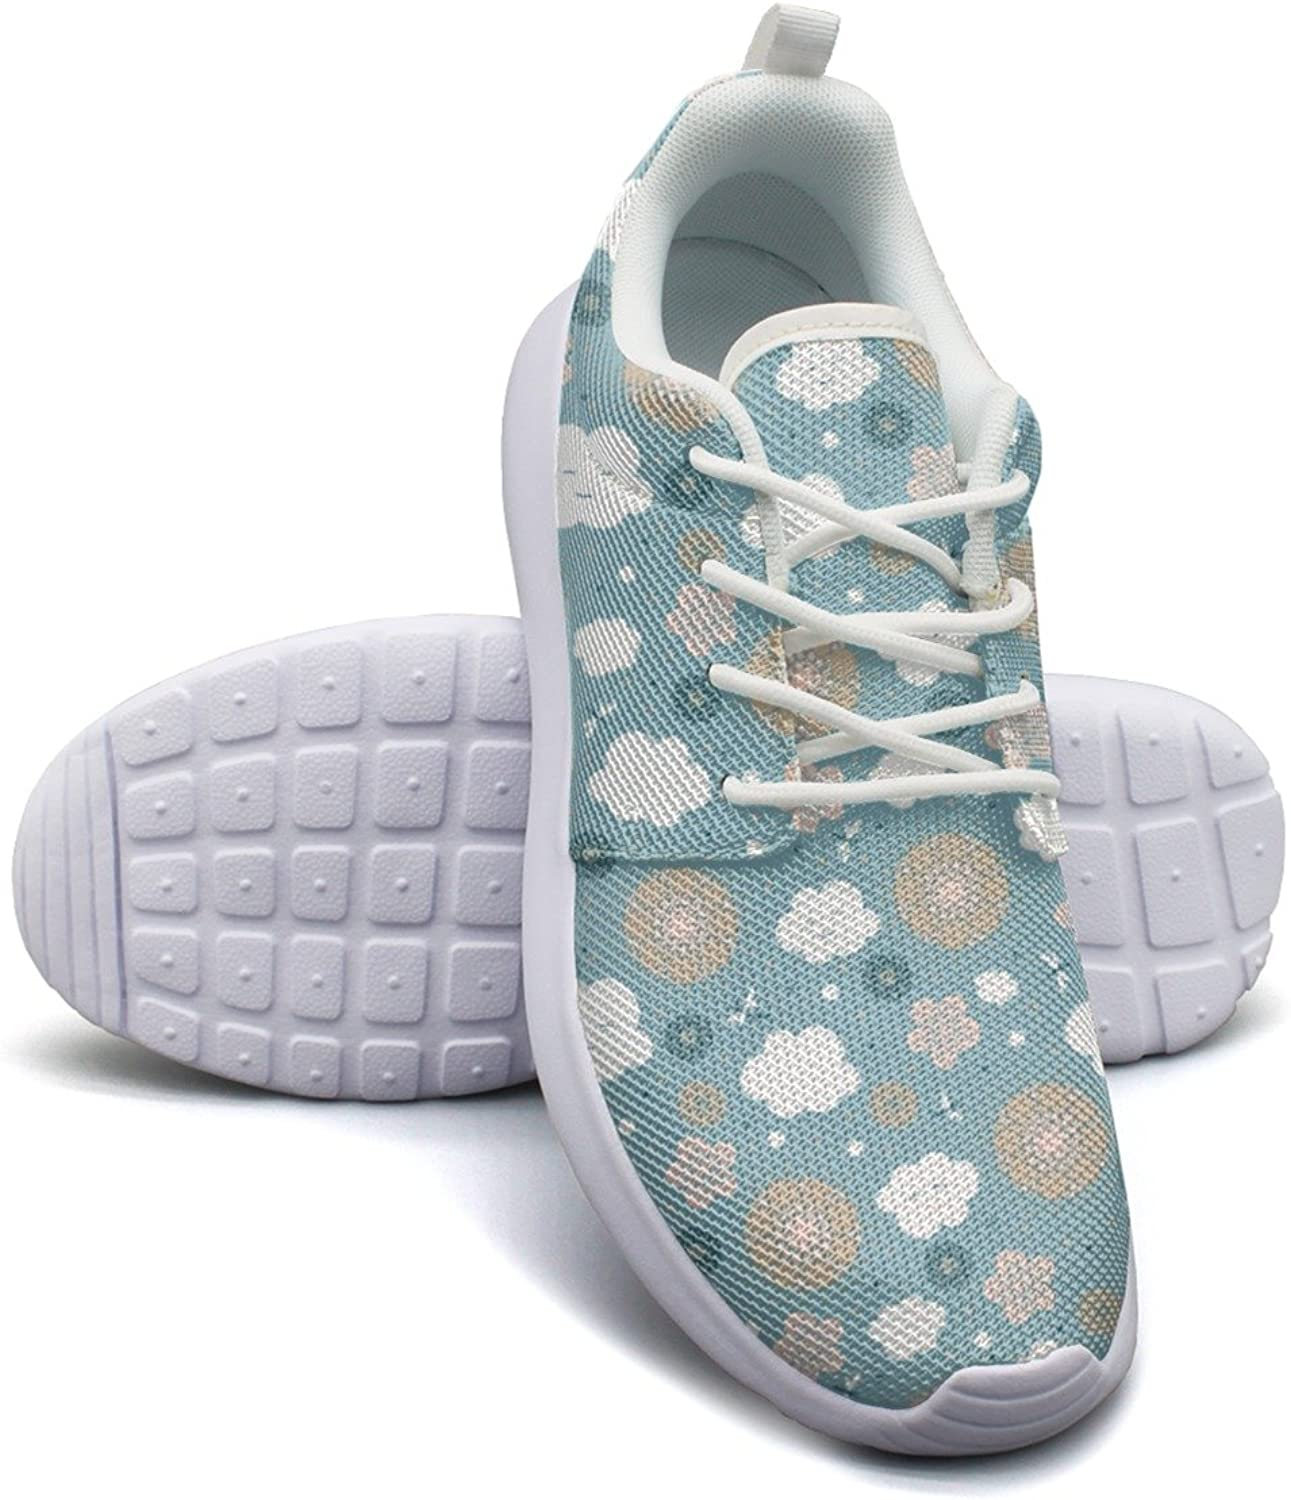 Eoyles gy Artificial Flowers with Clouds Women's Slip Resistant Lightweight Running Walking shoes